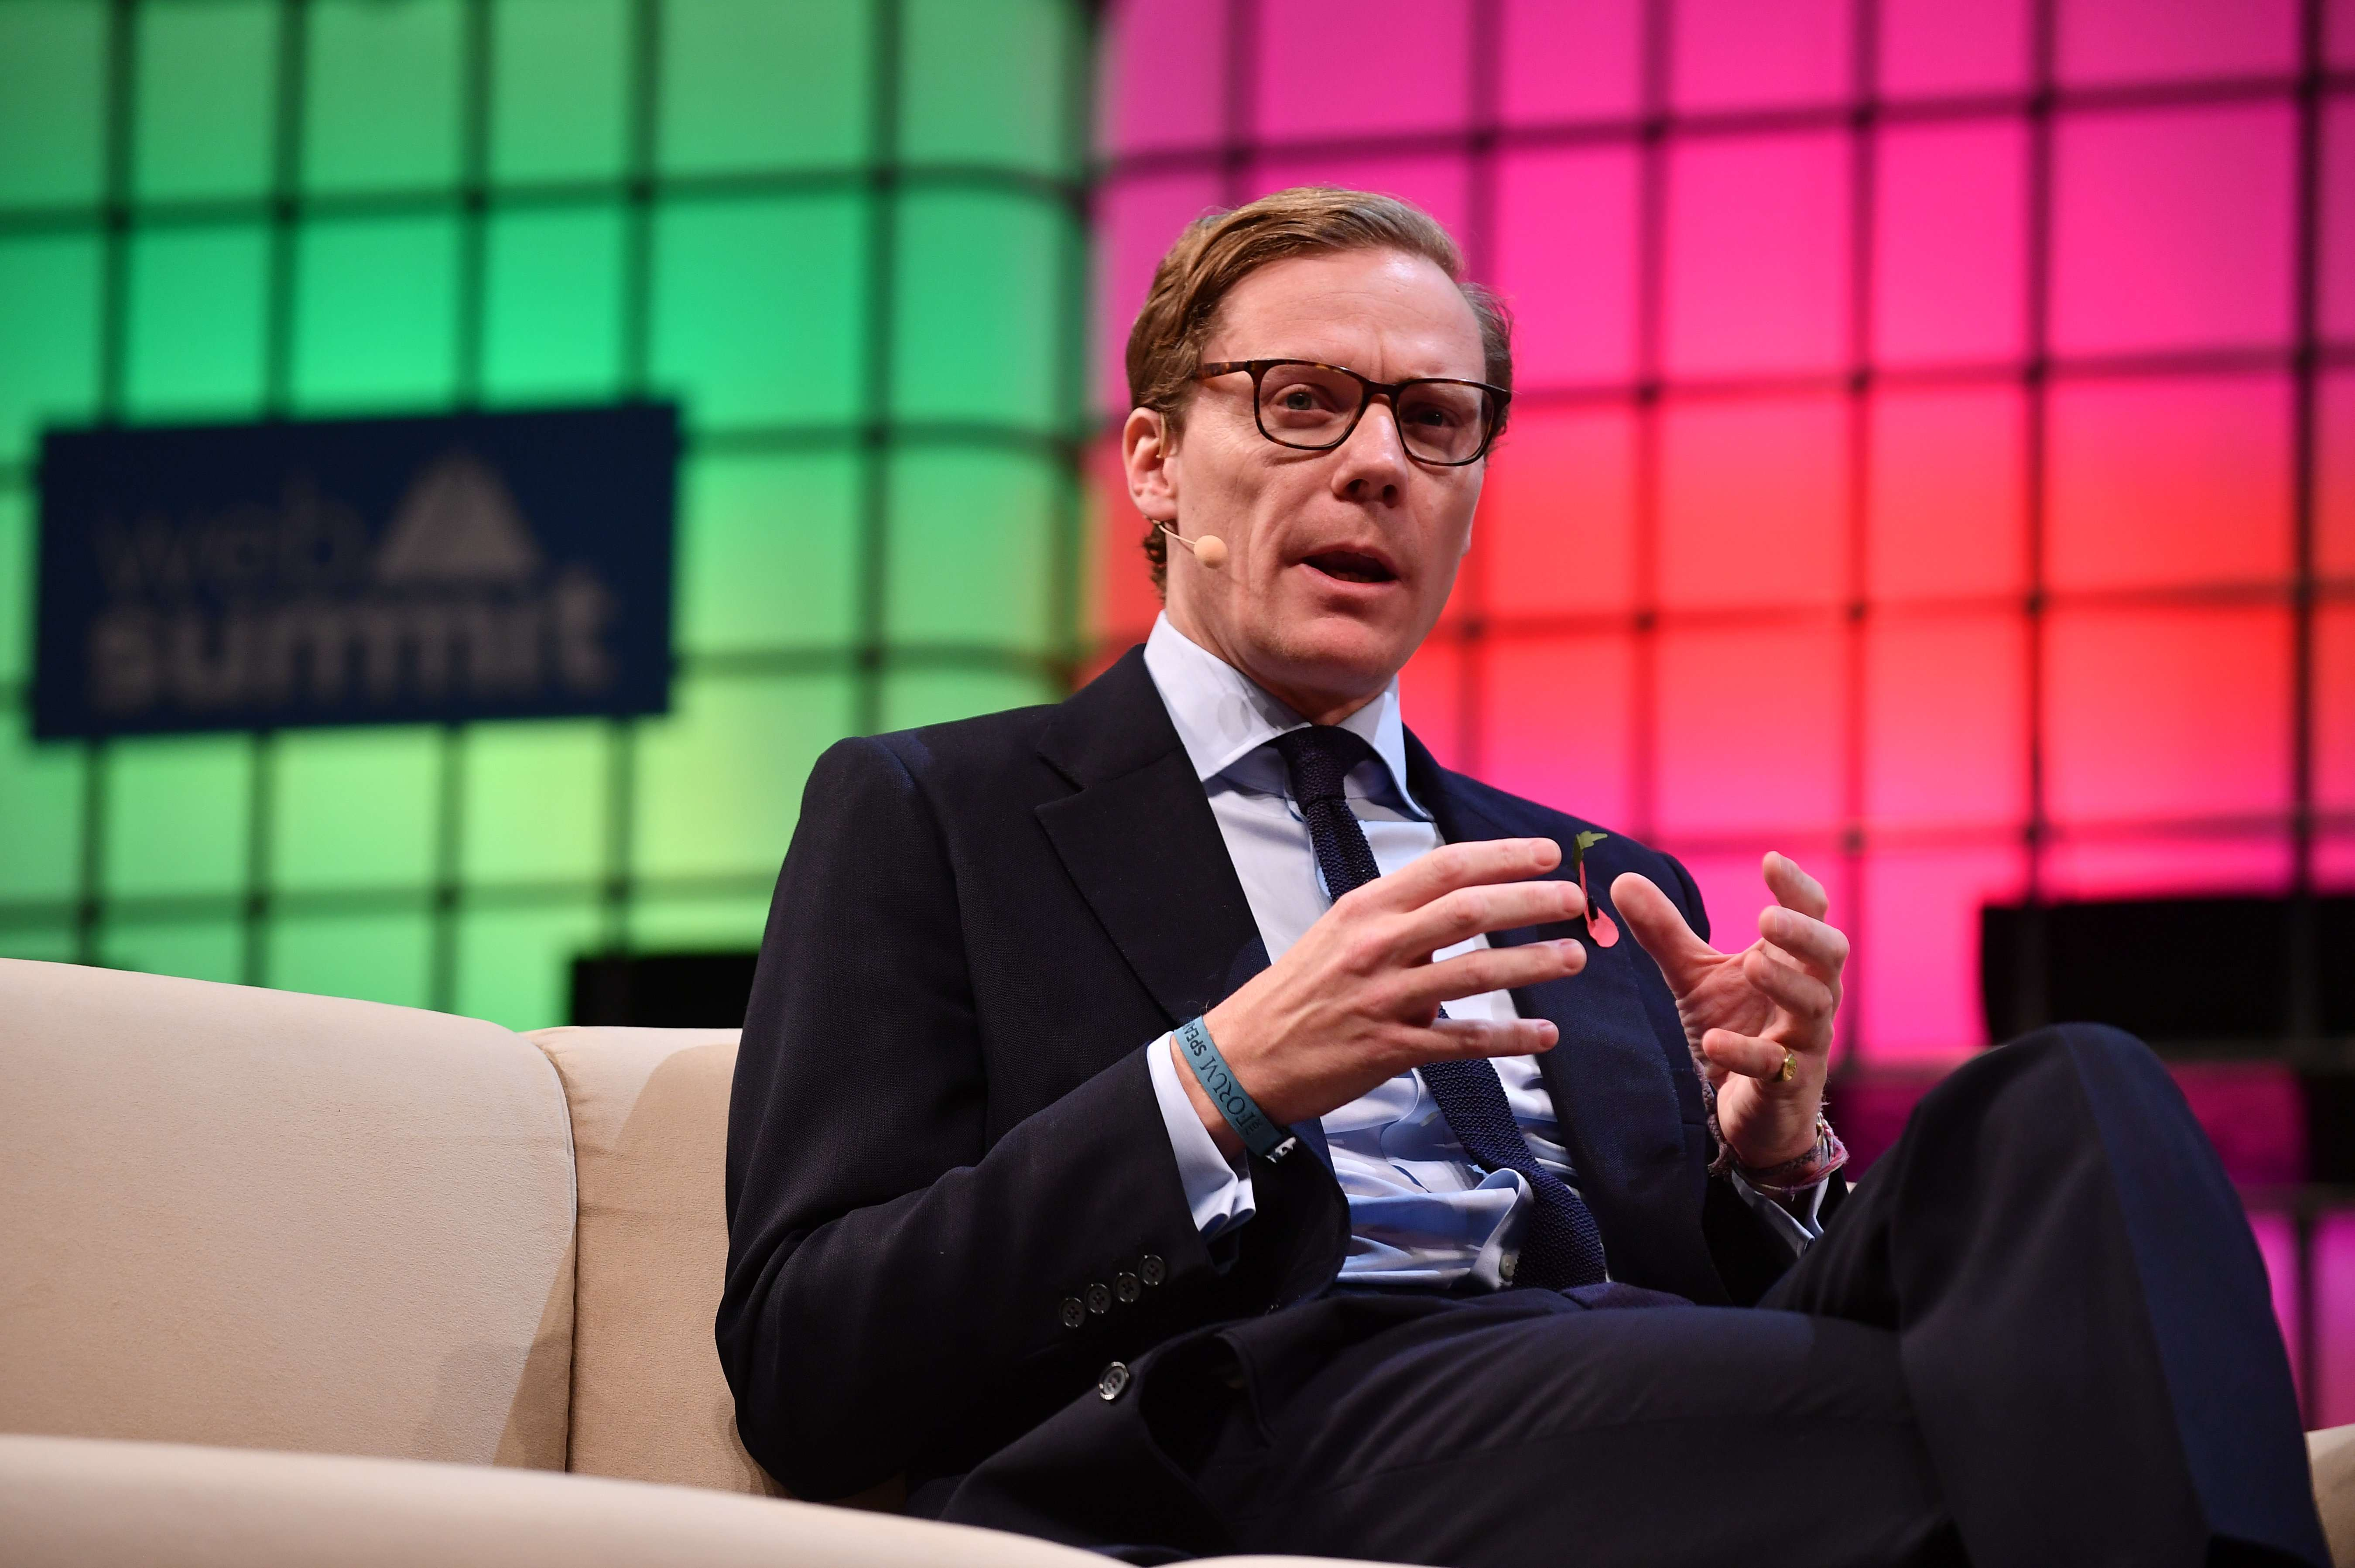 Alexander Nix, CEO, Cambridge Analytica, speaking at the Web Summit 2017 at Altice Arena in Lisbon, Portugal. (Image Credit: Sam Barnes/Web Summit via Sportsfile)